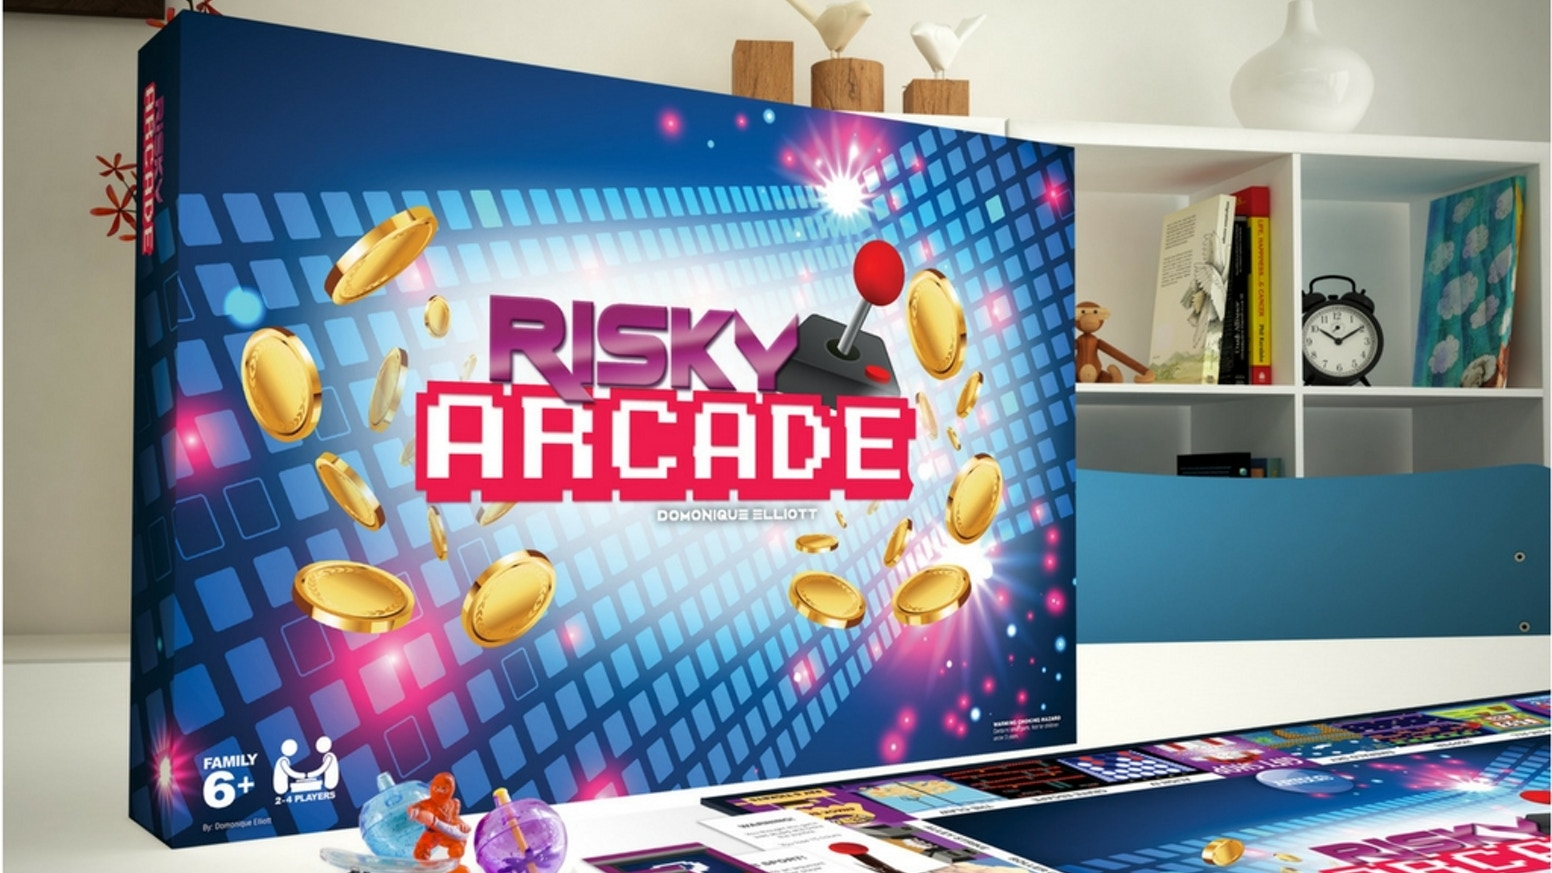 Play arcade games on the board, win tickets and race to the gift shop! Take risks, battle other players and collect all 3 prizes to Win